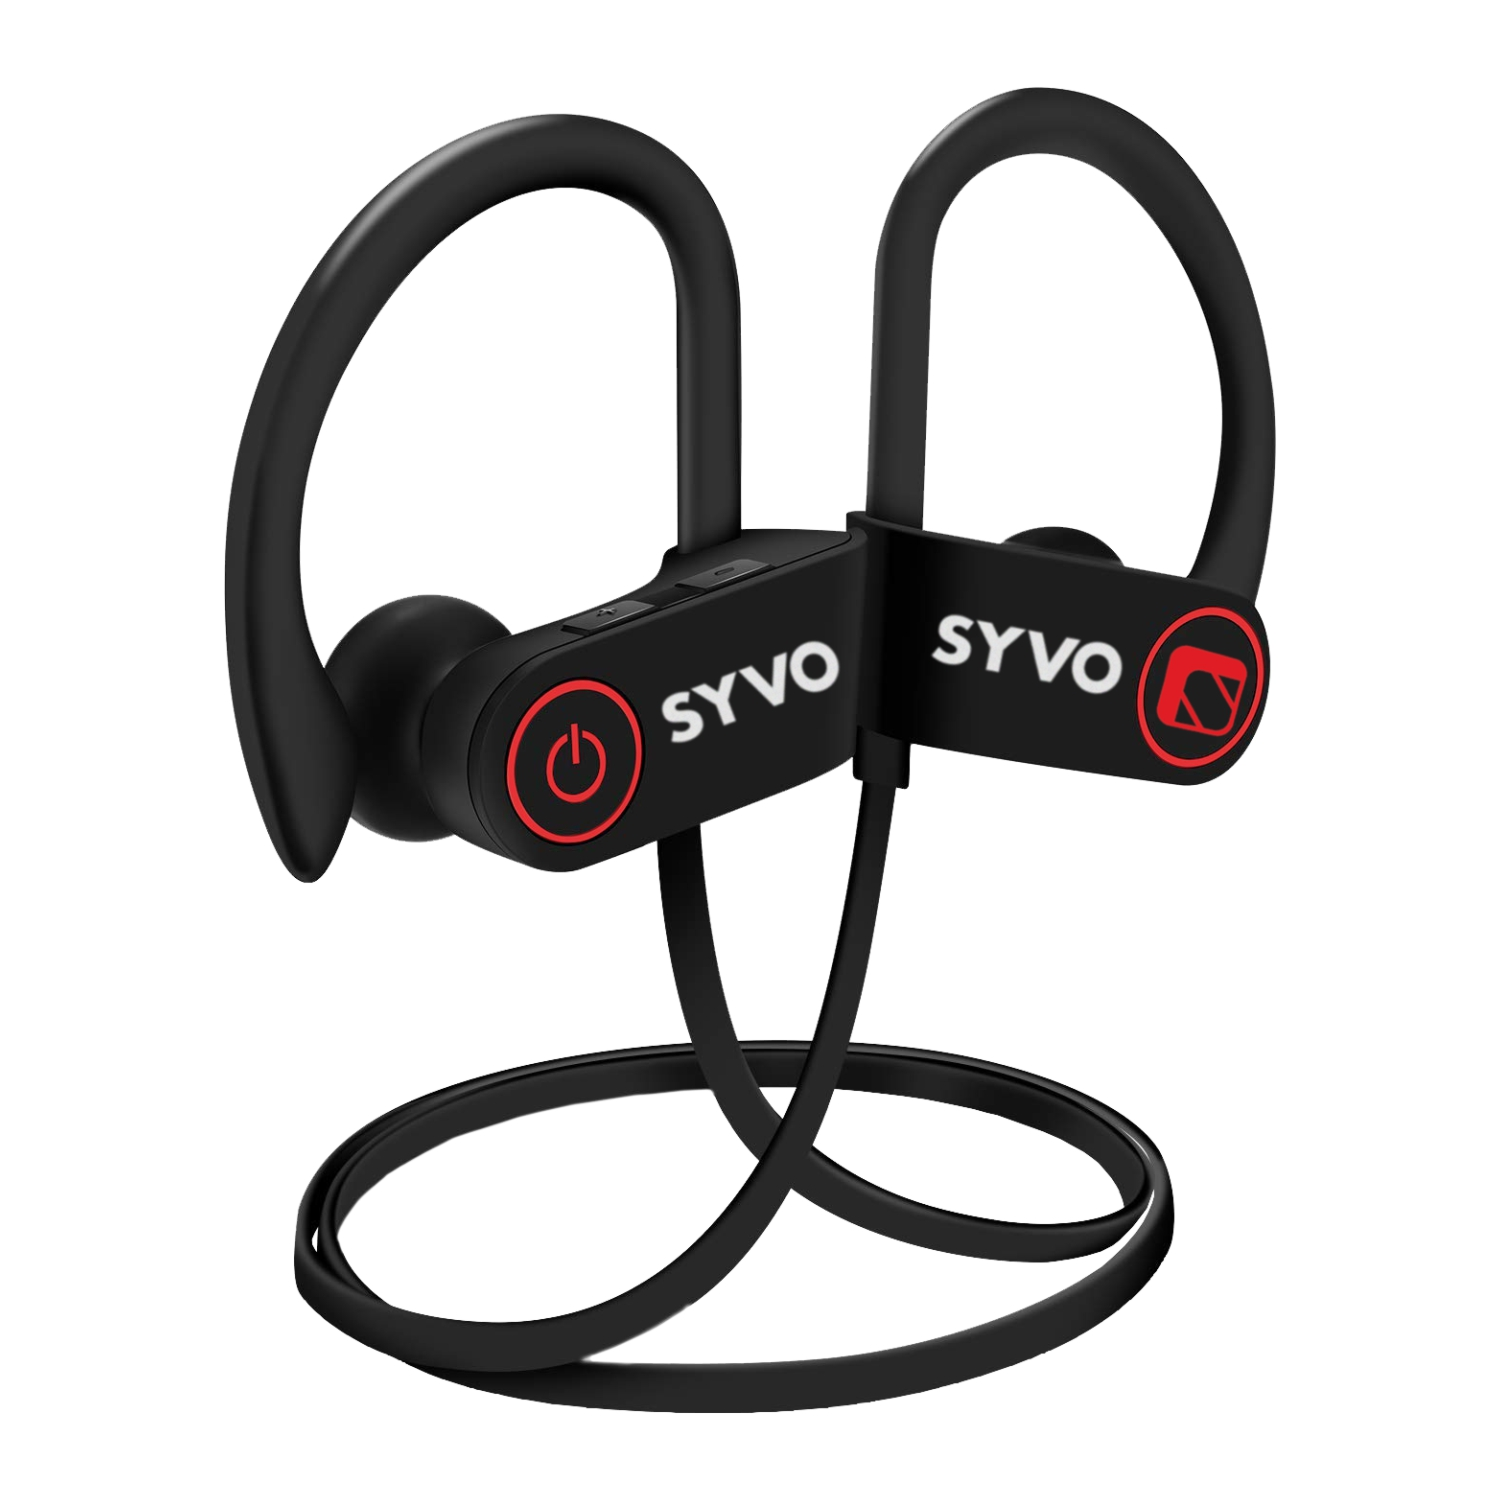 Syvo Flame IPX7 Wireless Bluetooth Waterproof Earphones with Mic + Carry Case (Black)